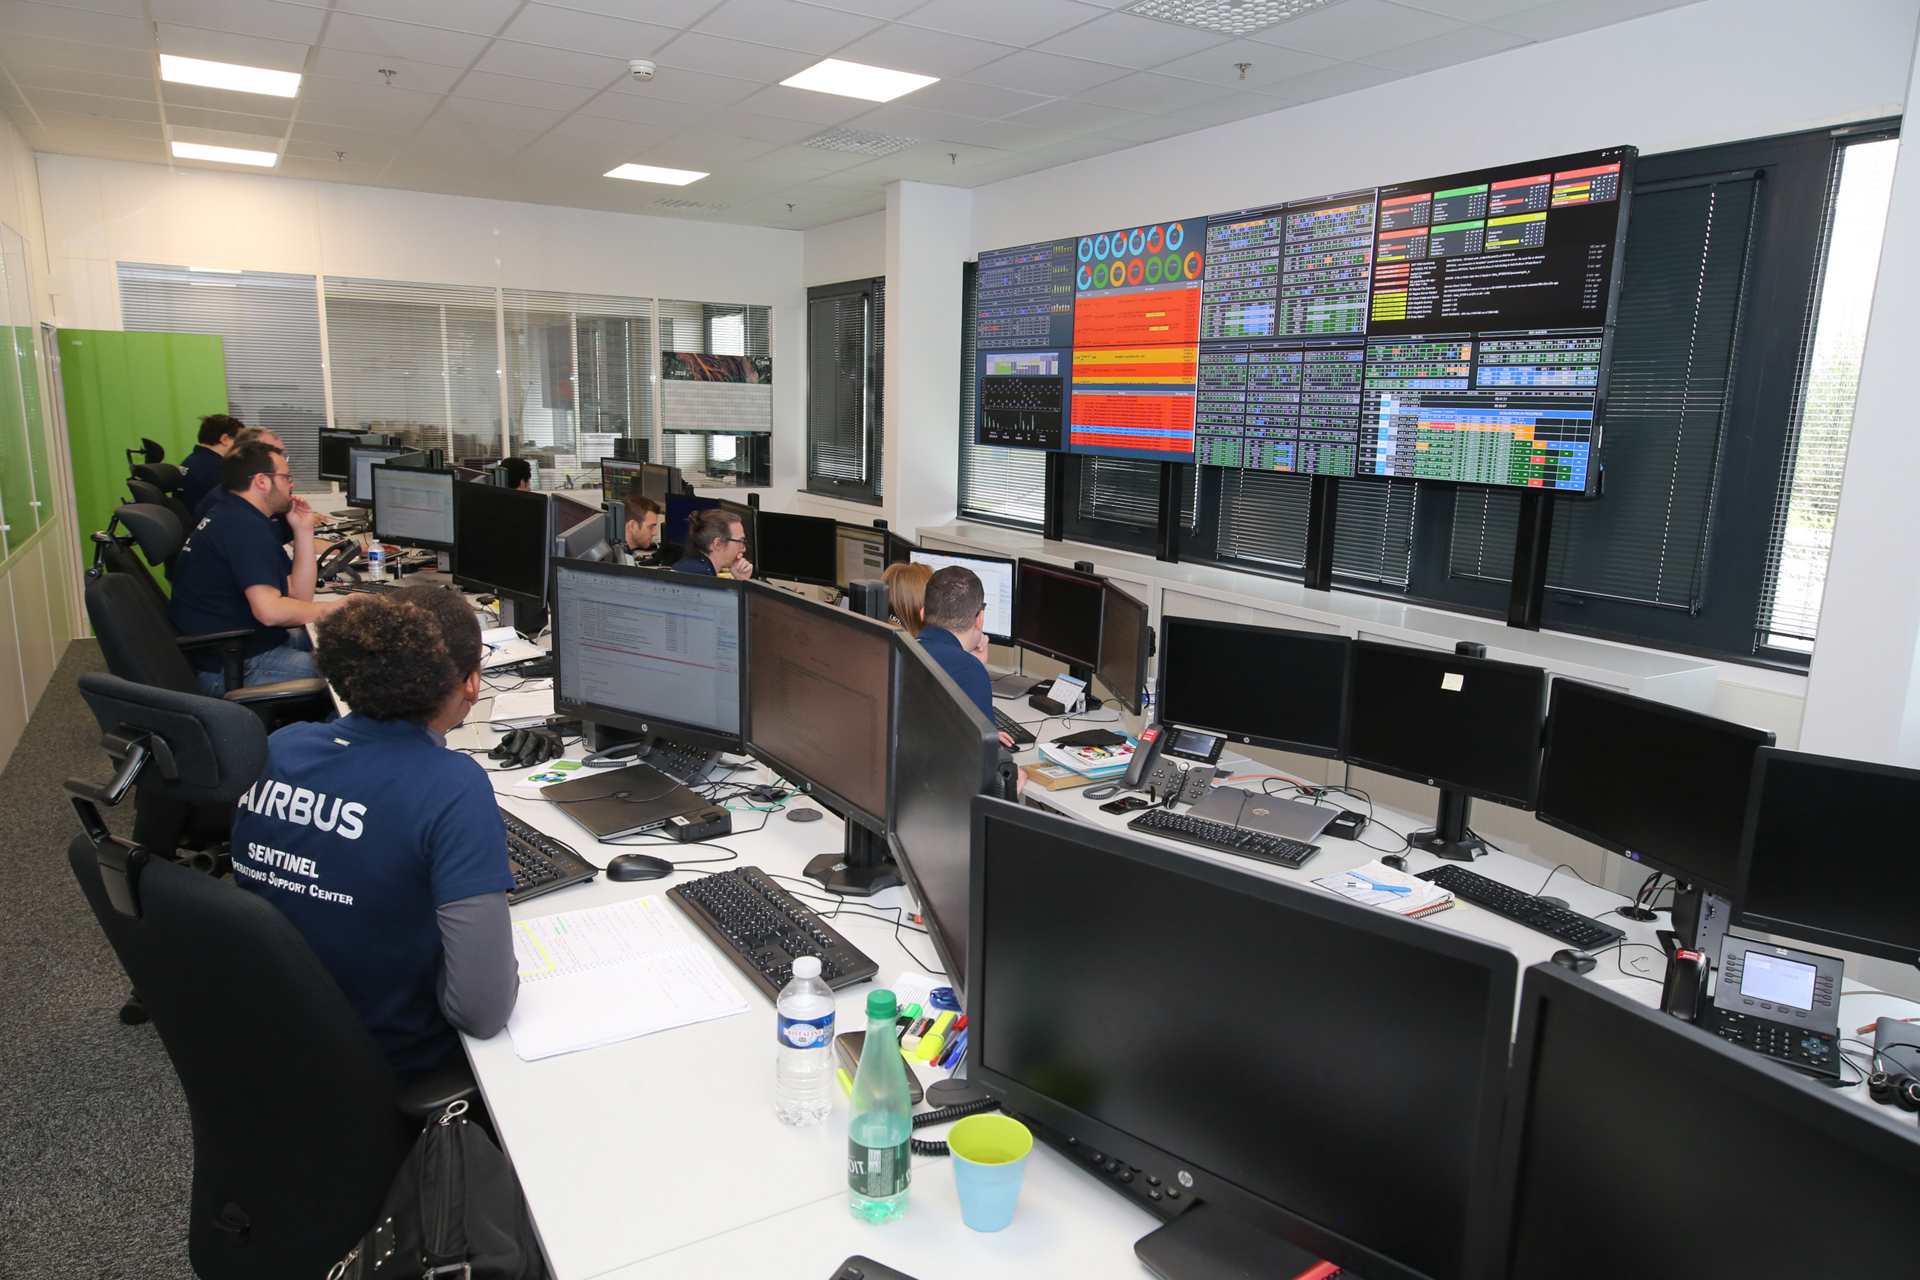 Airbus Defence and Space team members review data on monitors.